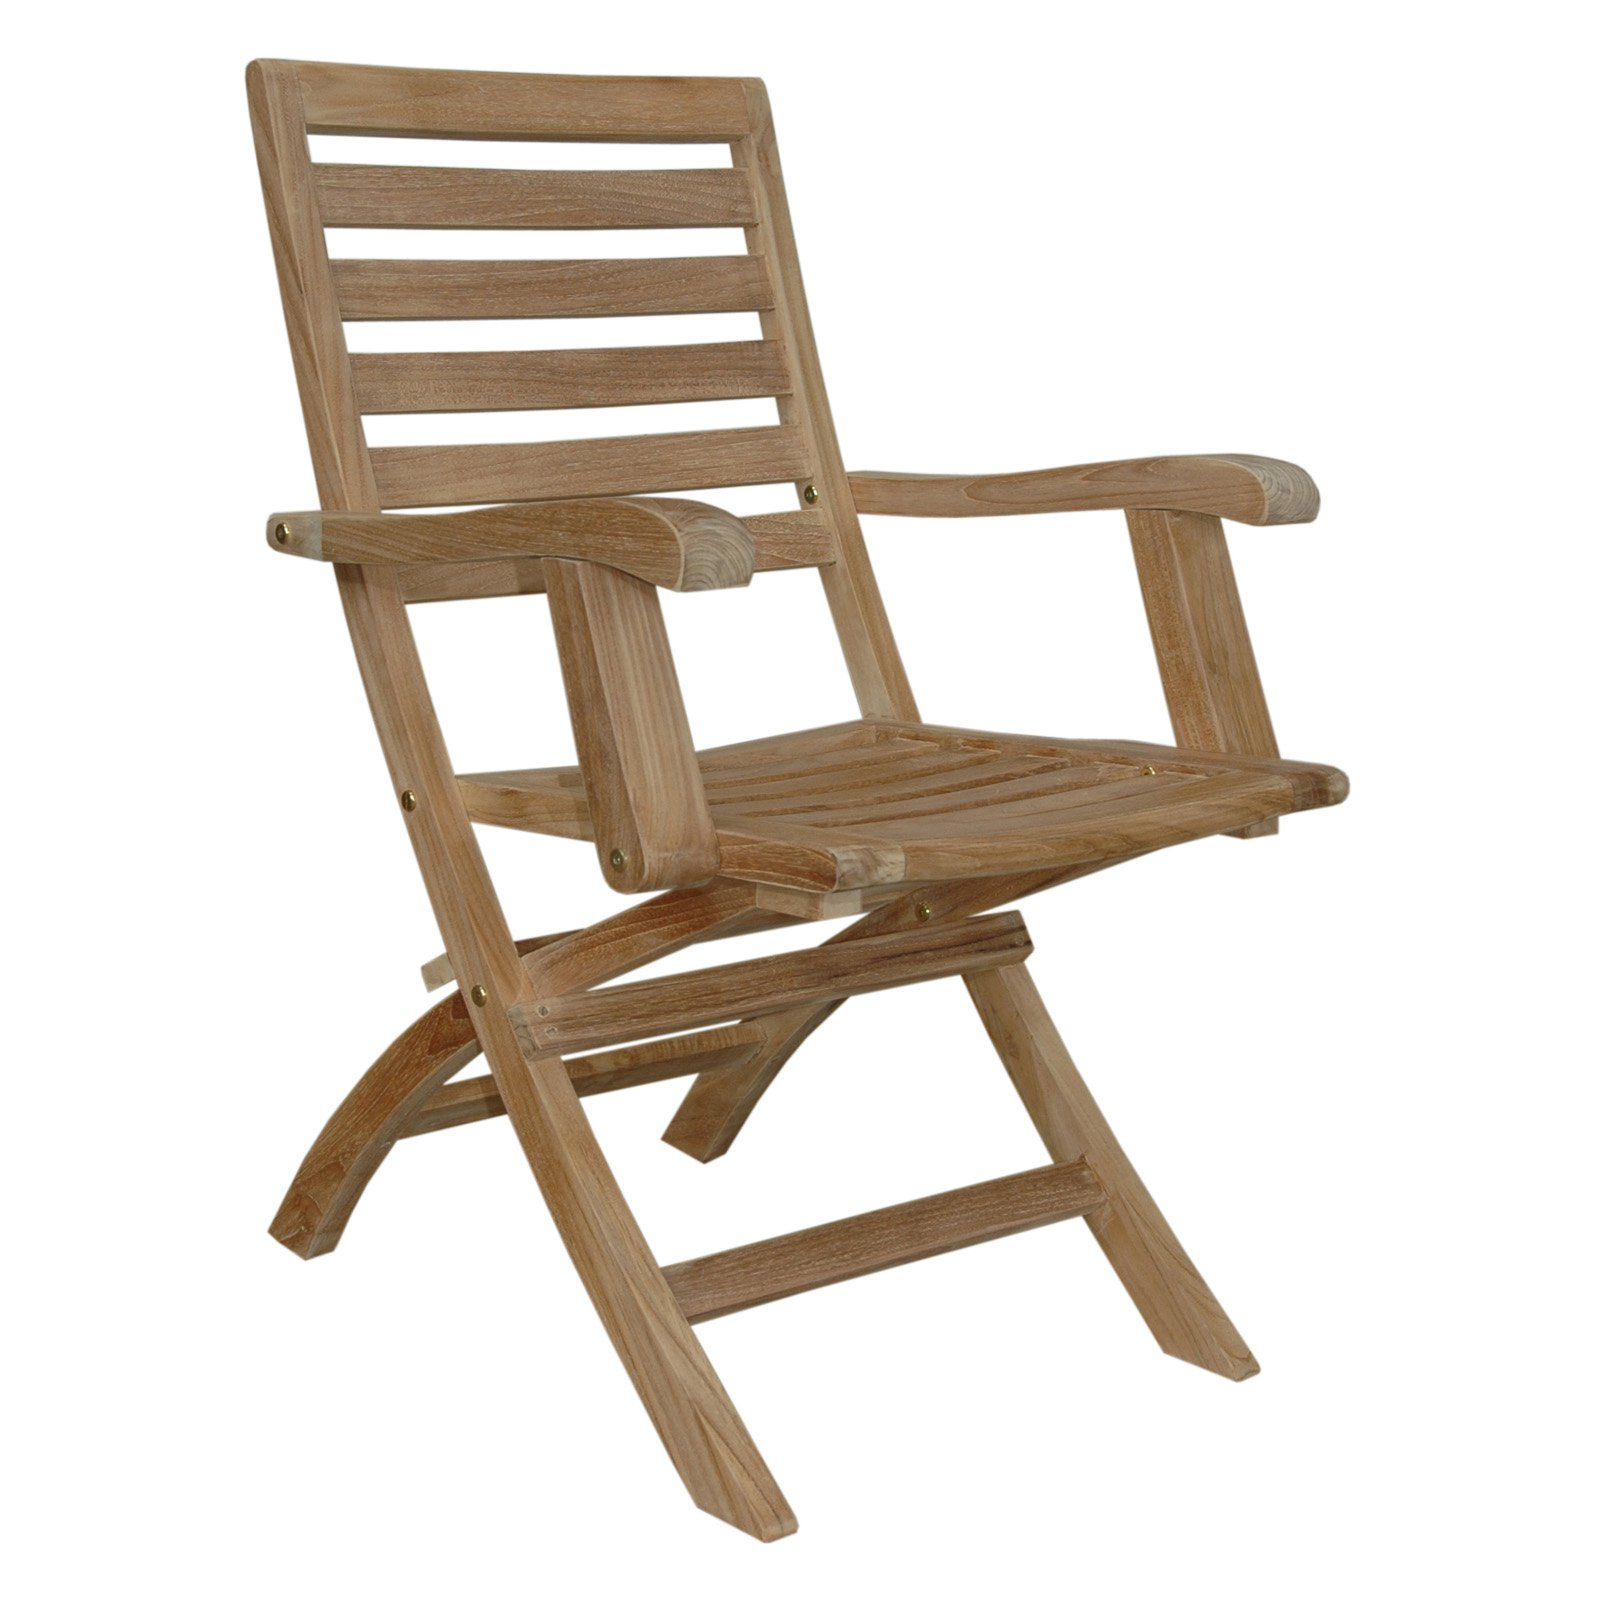 Anderson Teak Andrew Outdoor Folding Armchair Set of 2 by Anderson Teak